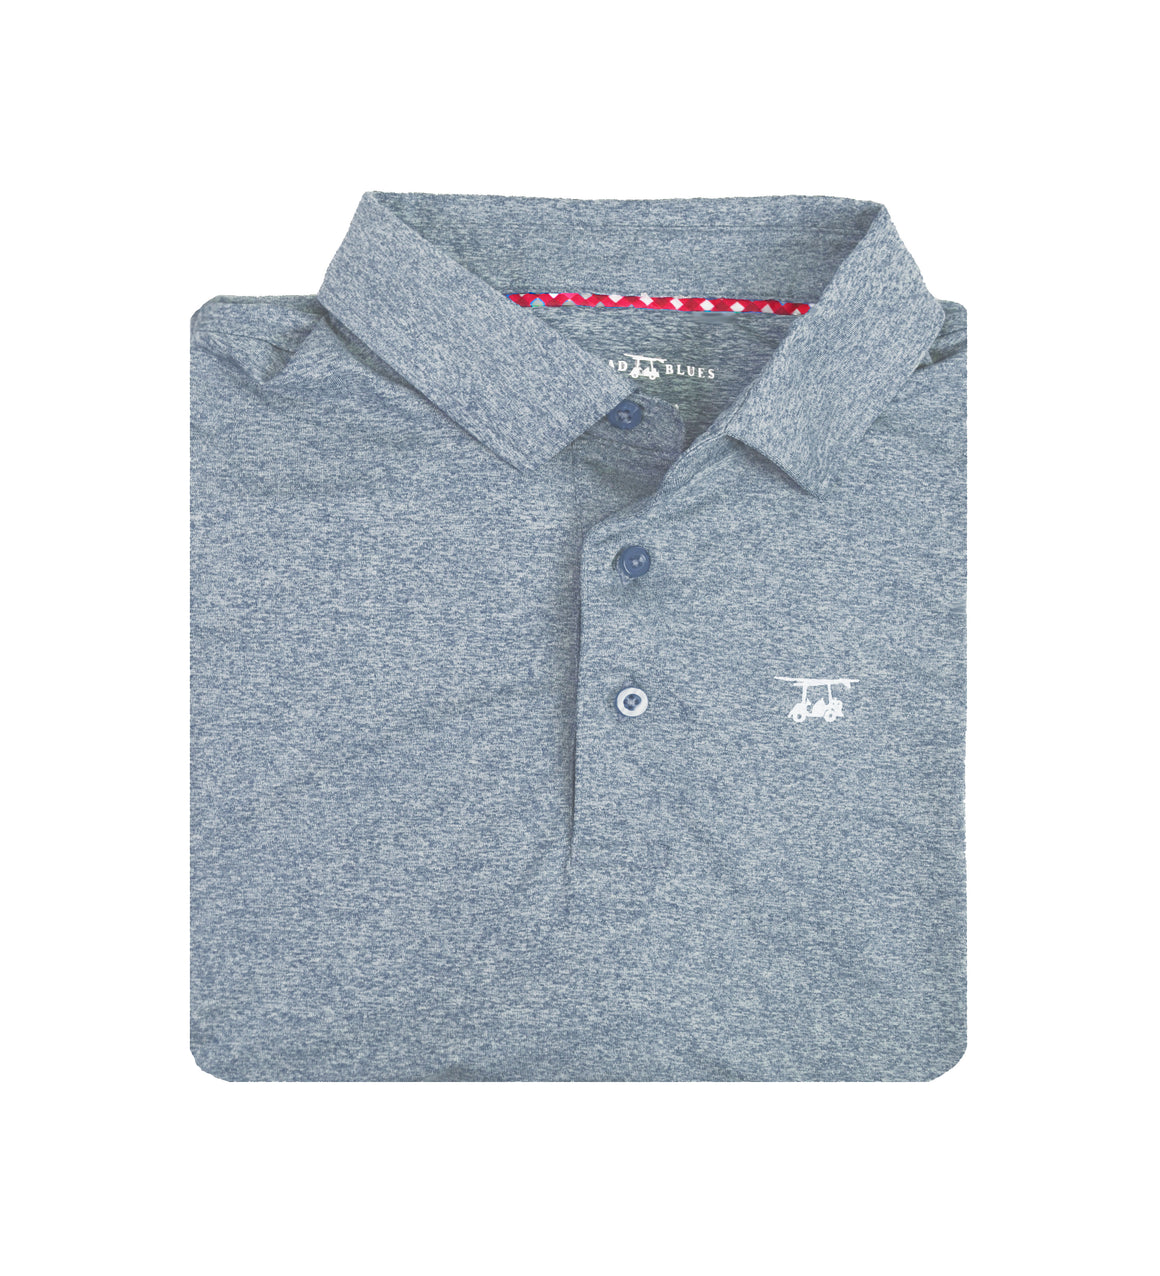 *NEW* Albatross Youth Polo - Heather Charcoal